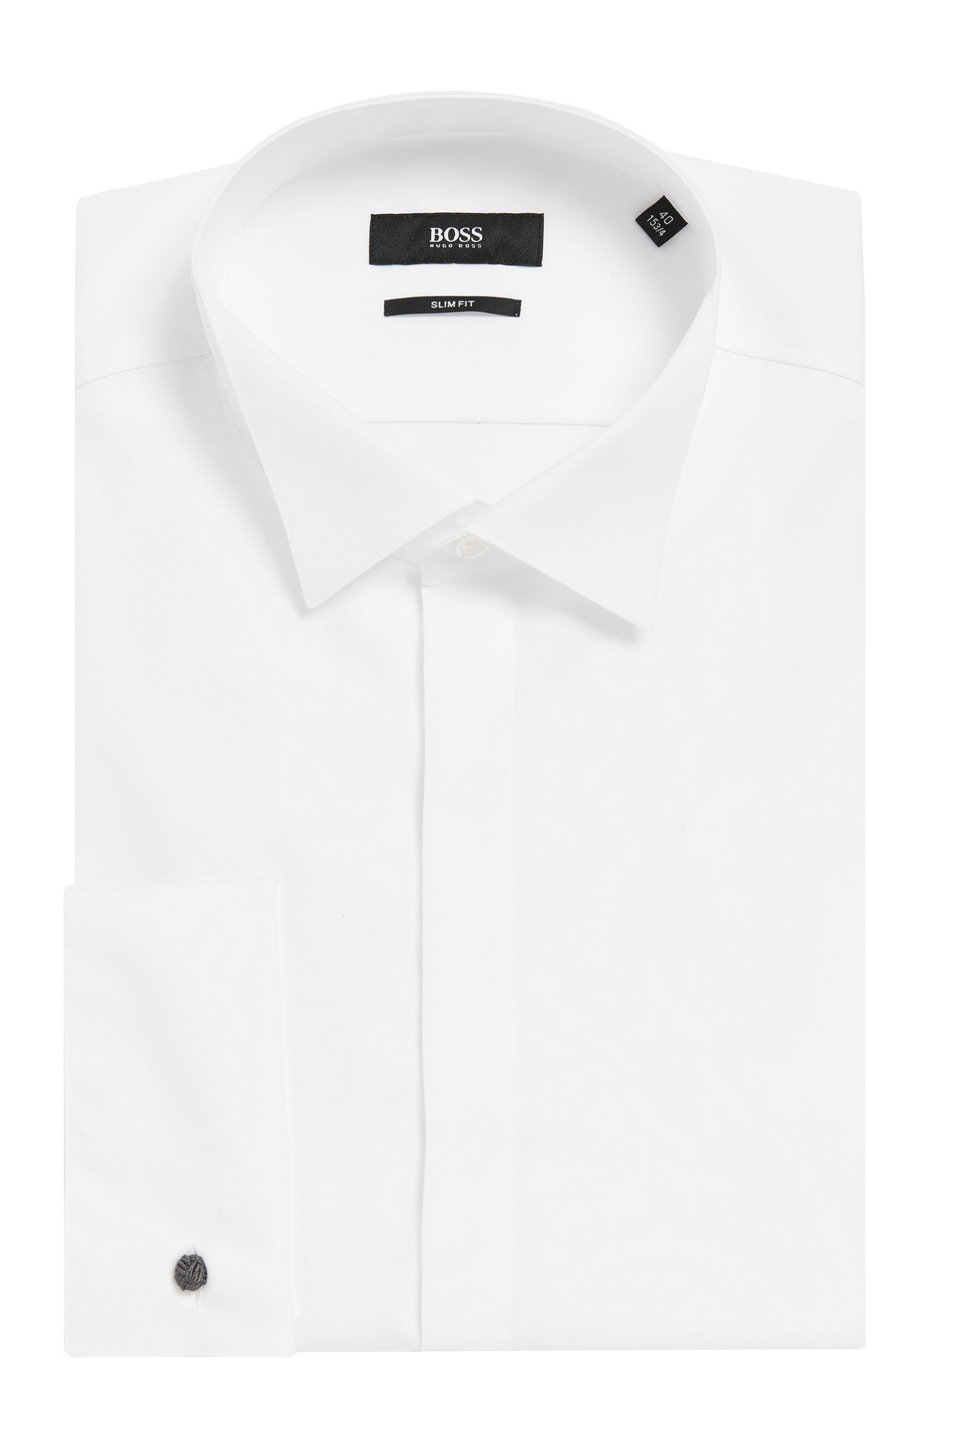 White shirt by BOSS